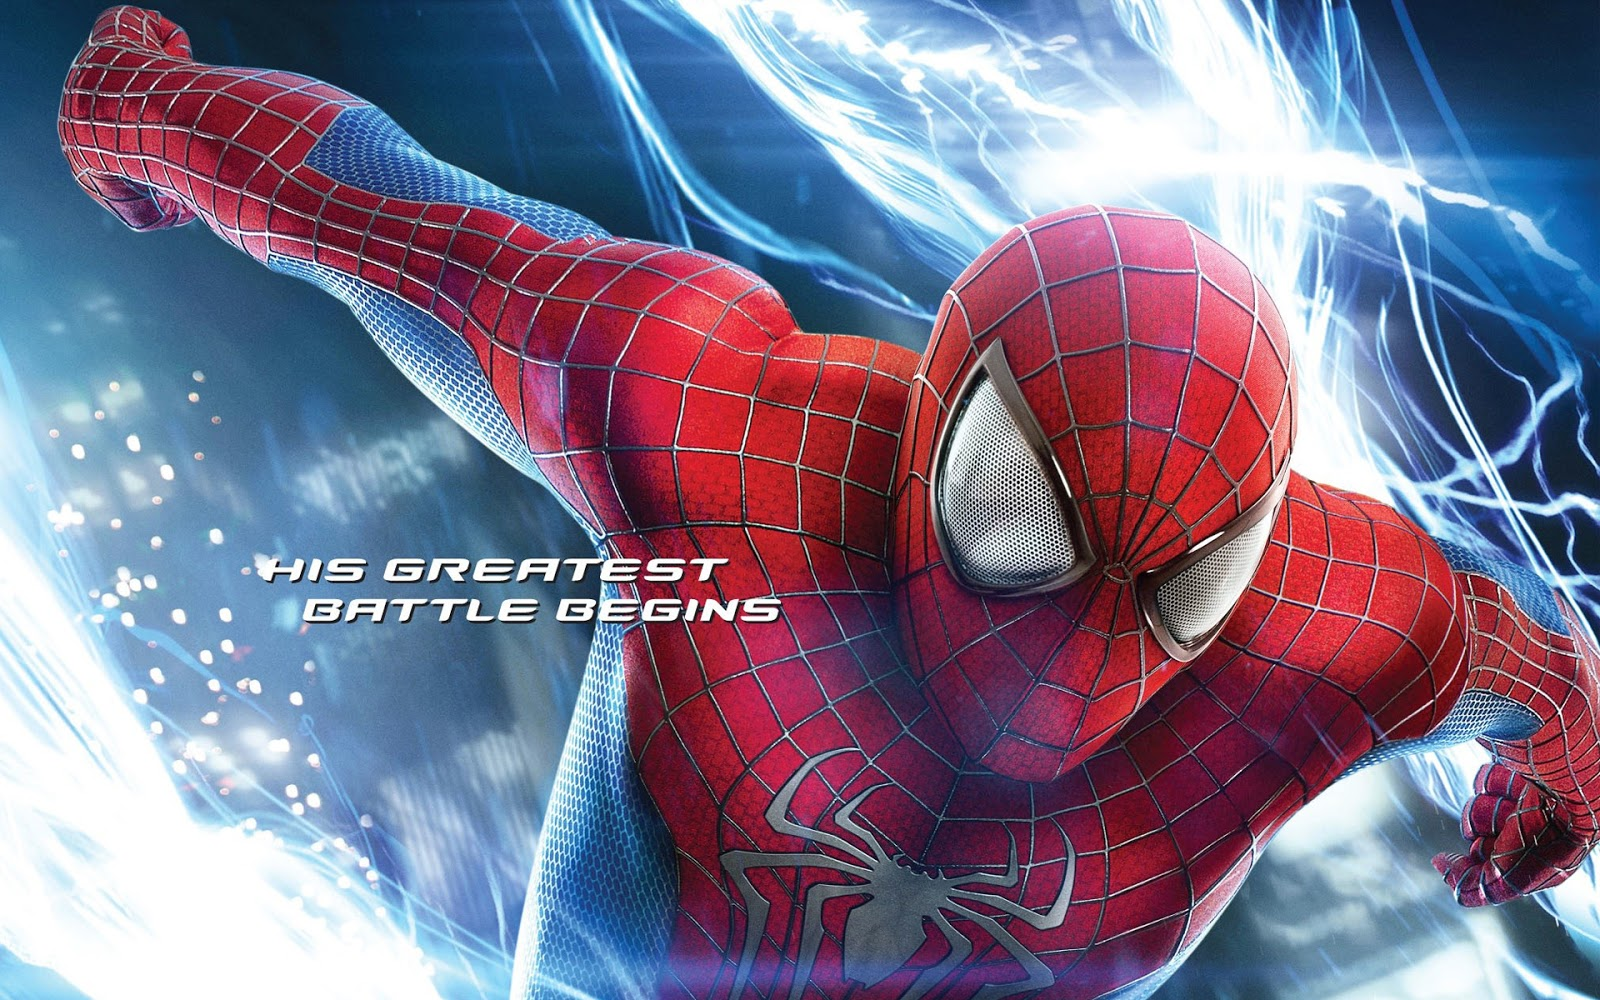 THE%2BAMAZING%2BSPIDERMAN - The Amazing Spiderman APK For Android